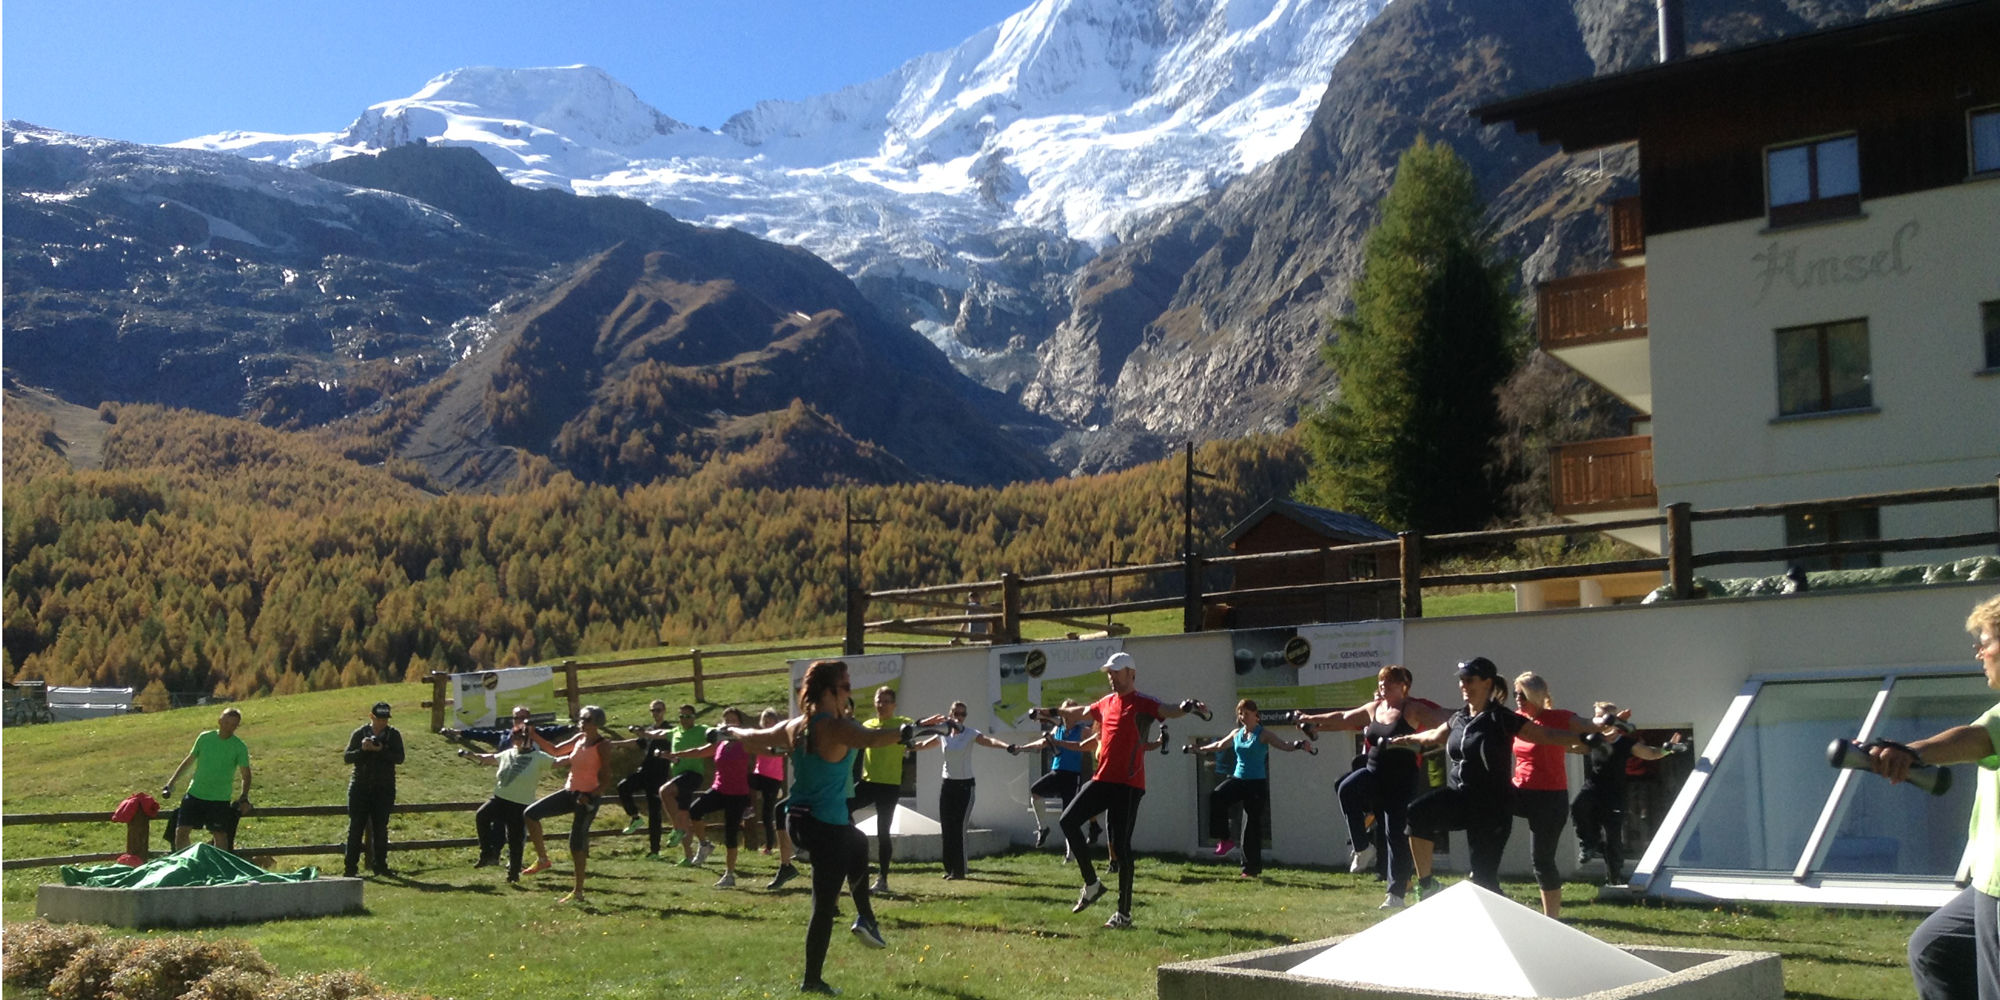 YoungGo Saas-Fee